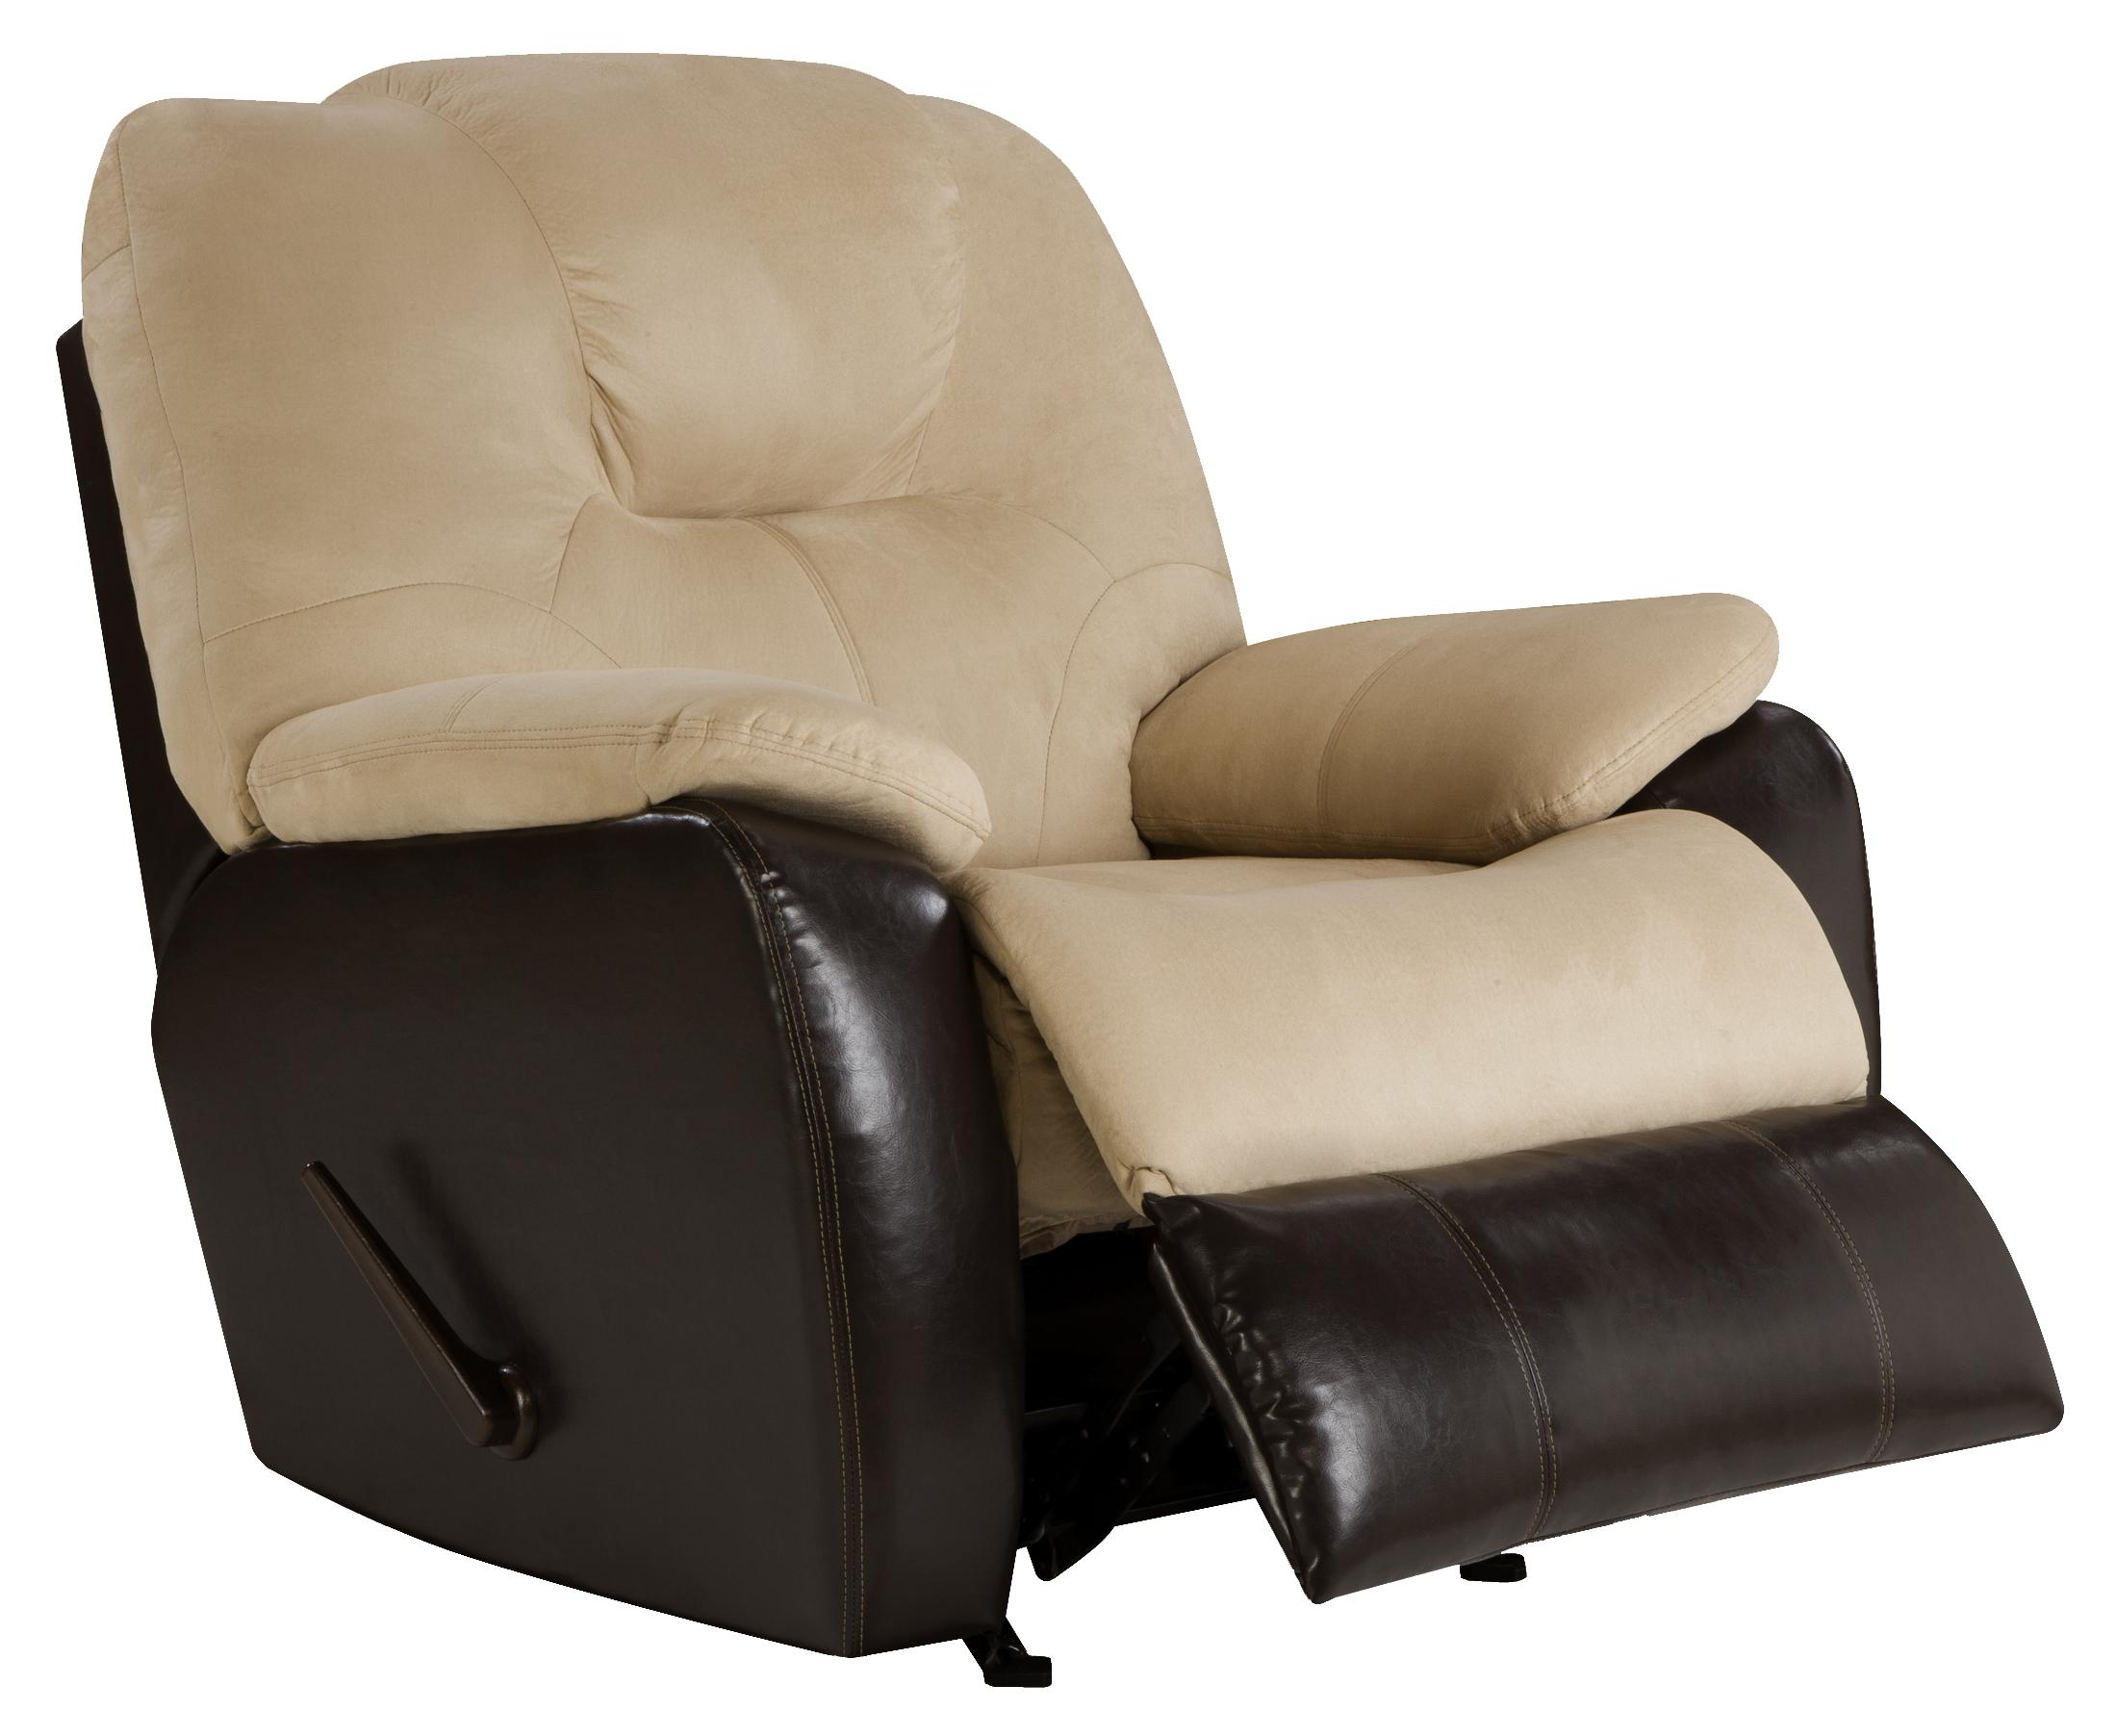 Southern Motion Avalon Rocker Recliner - Item Number: 1838 re-do